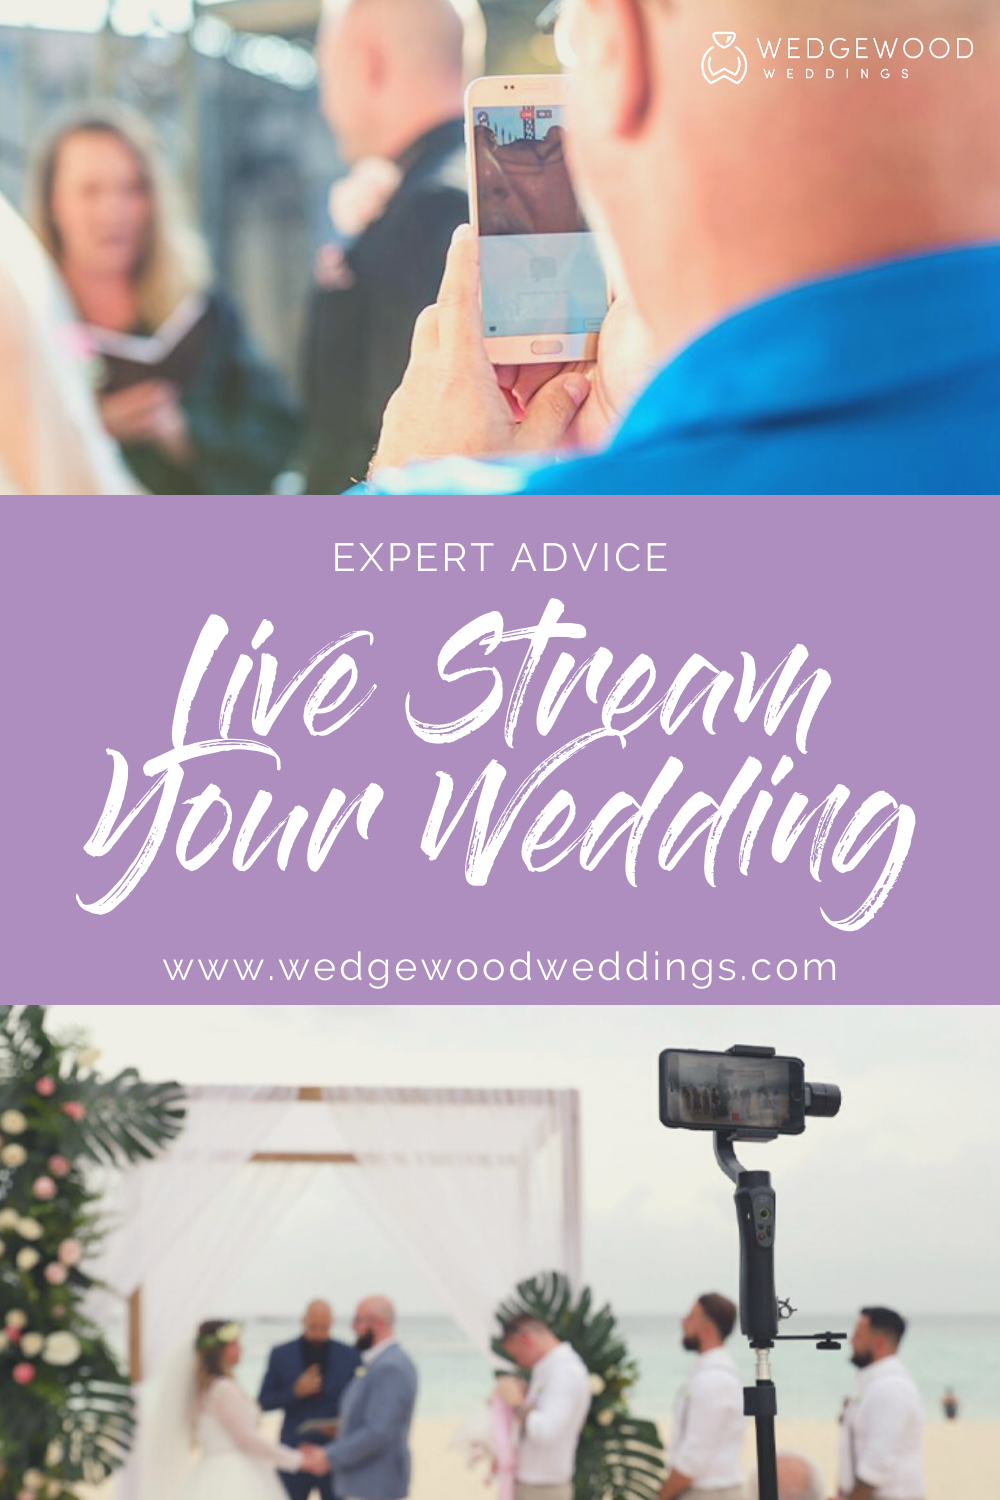 Expert Advice How To Live Stream Your Wedding Ceremony in